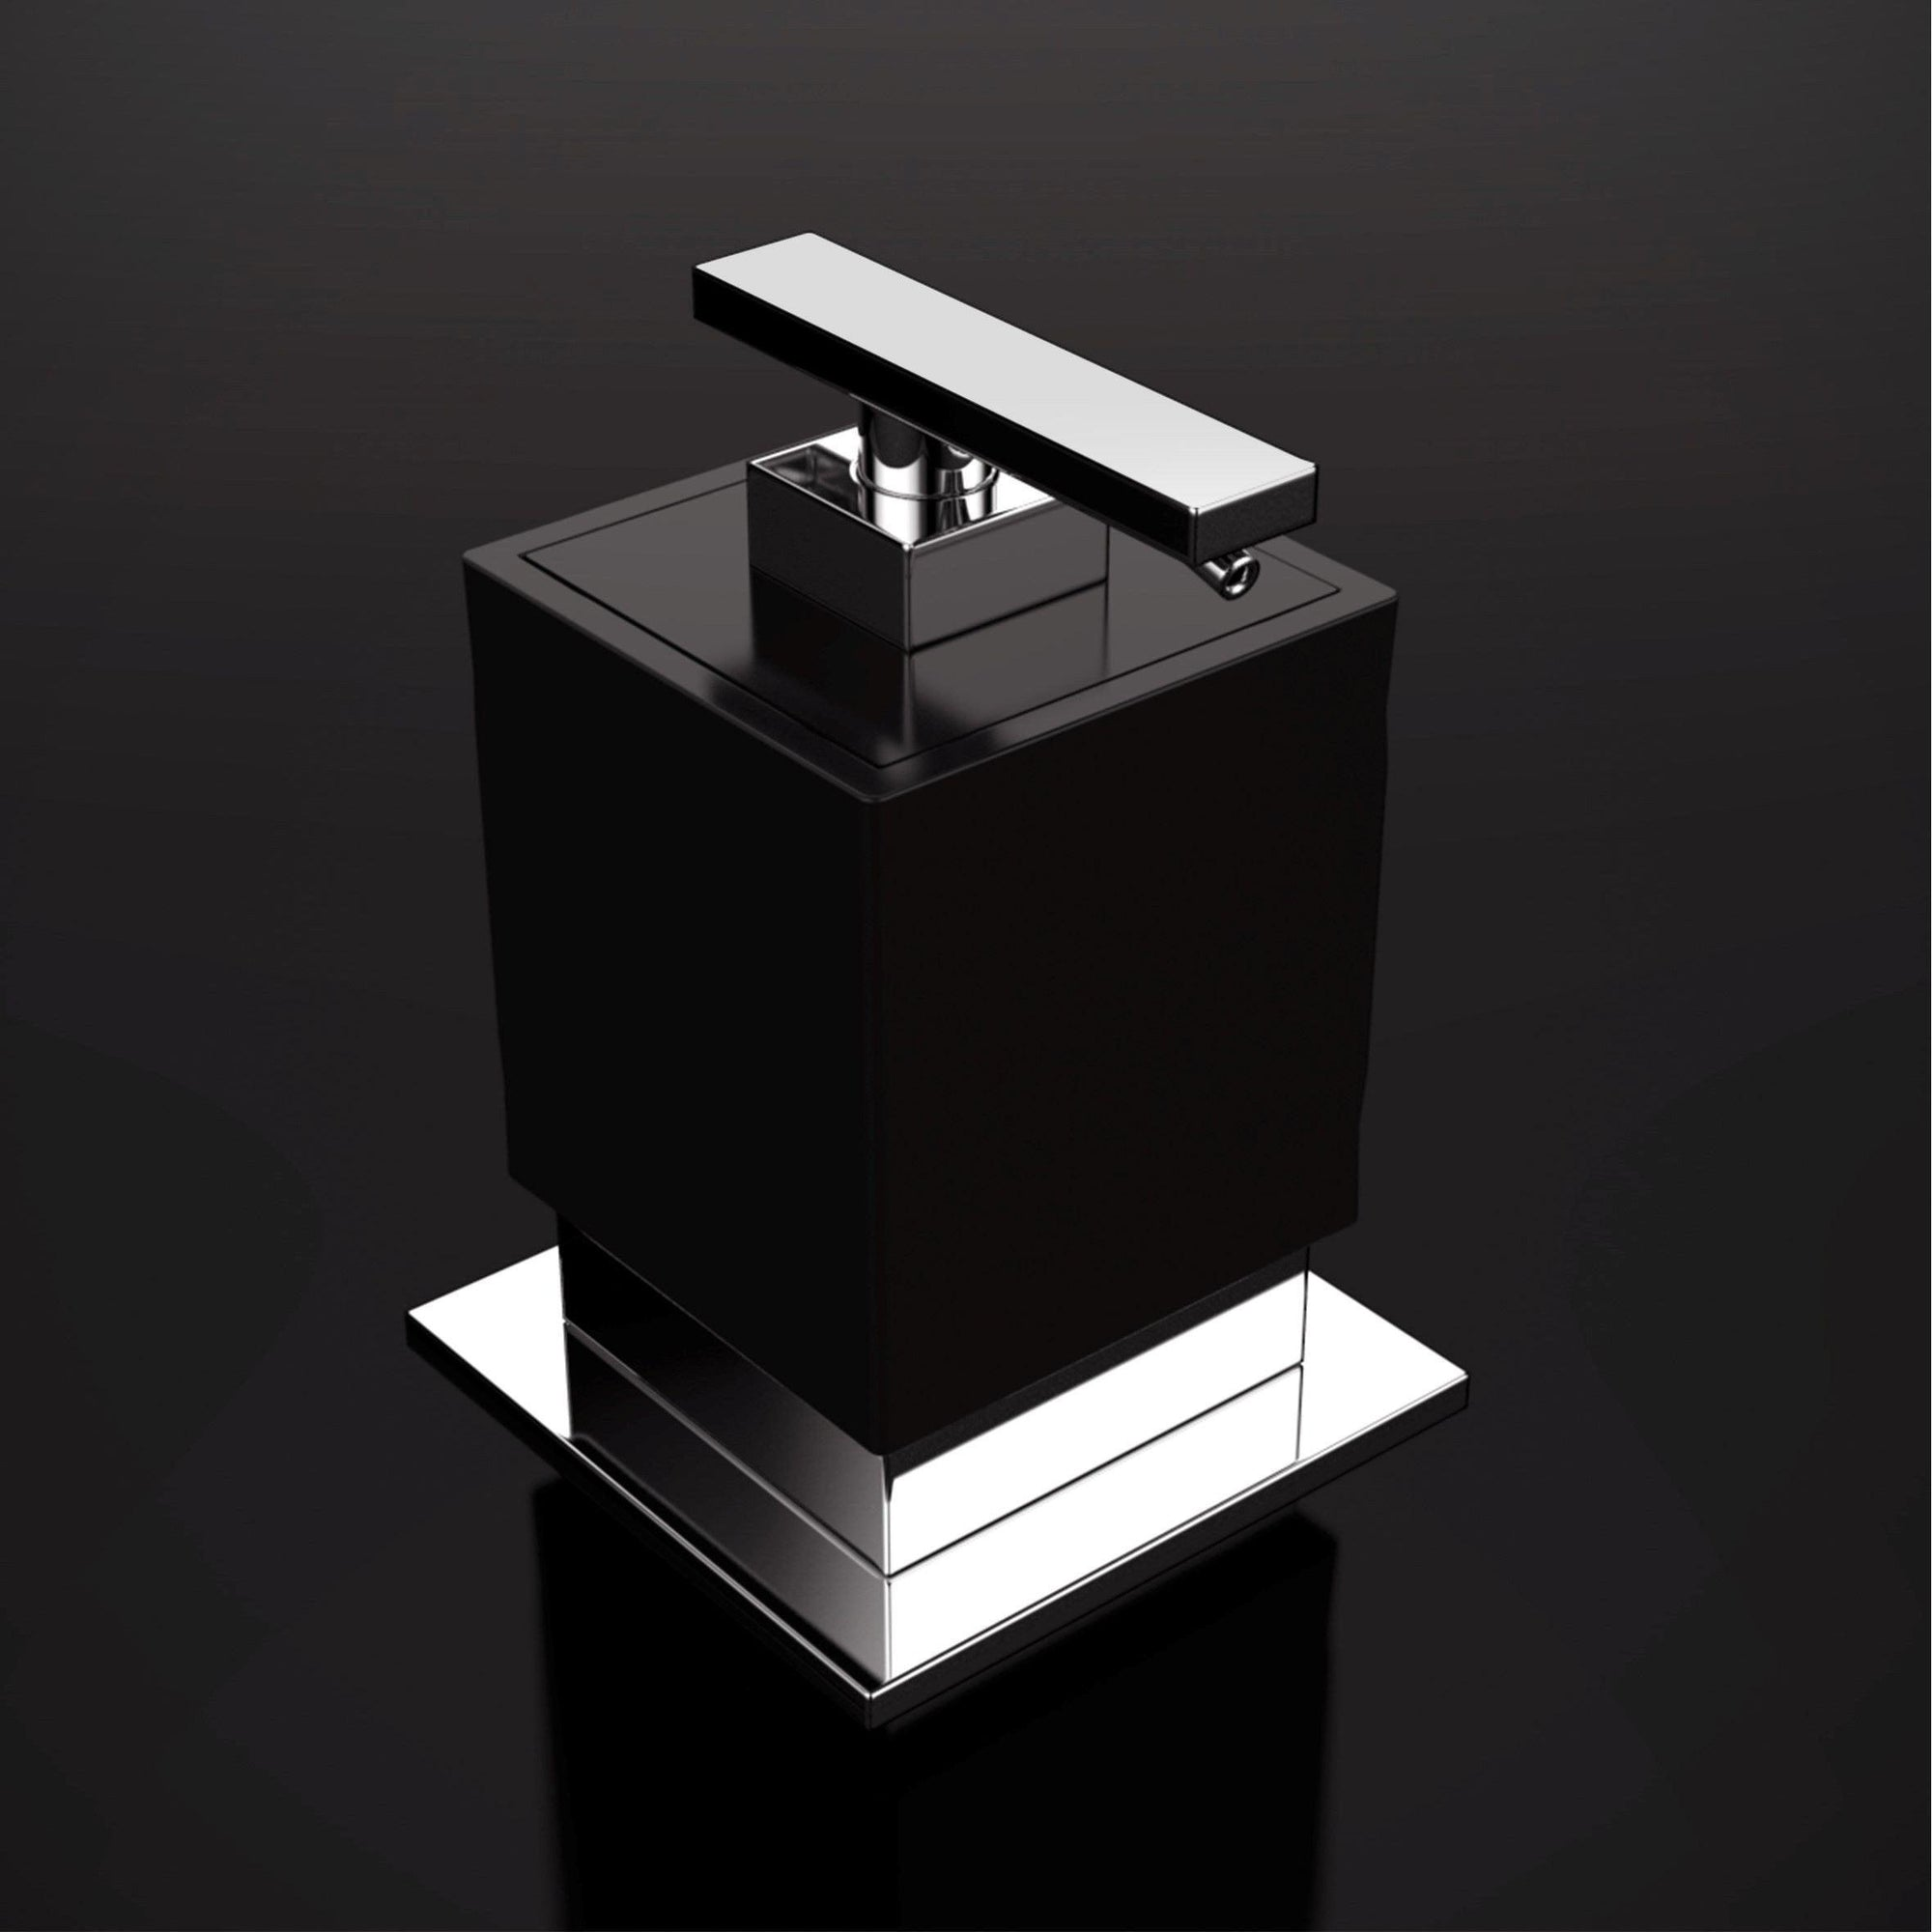 Zen Design - BA0260.202 - Be Soap Dispenser - Be - Black